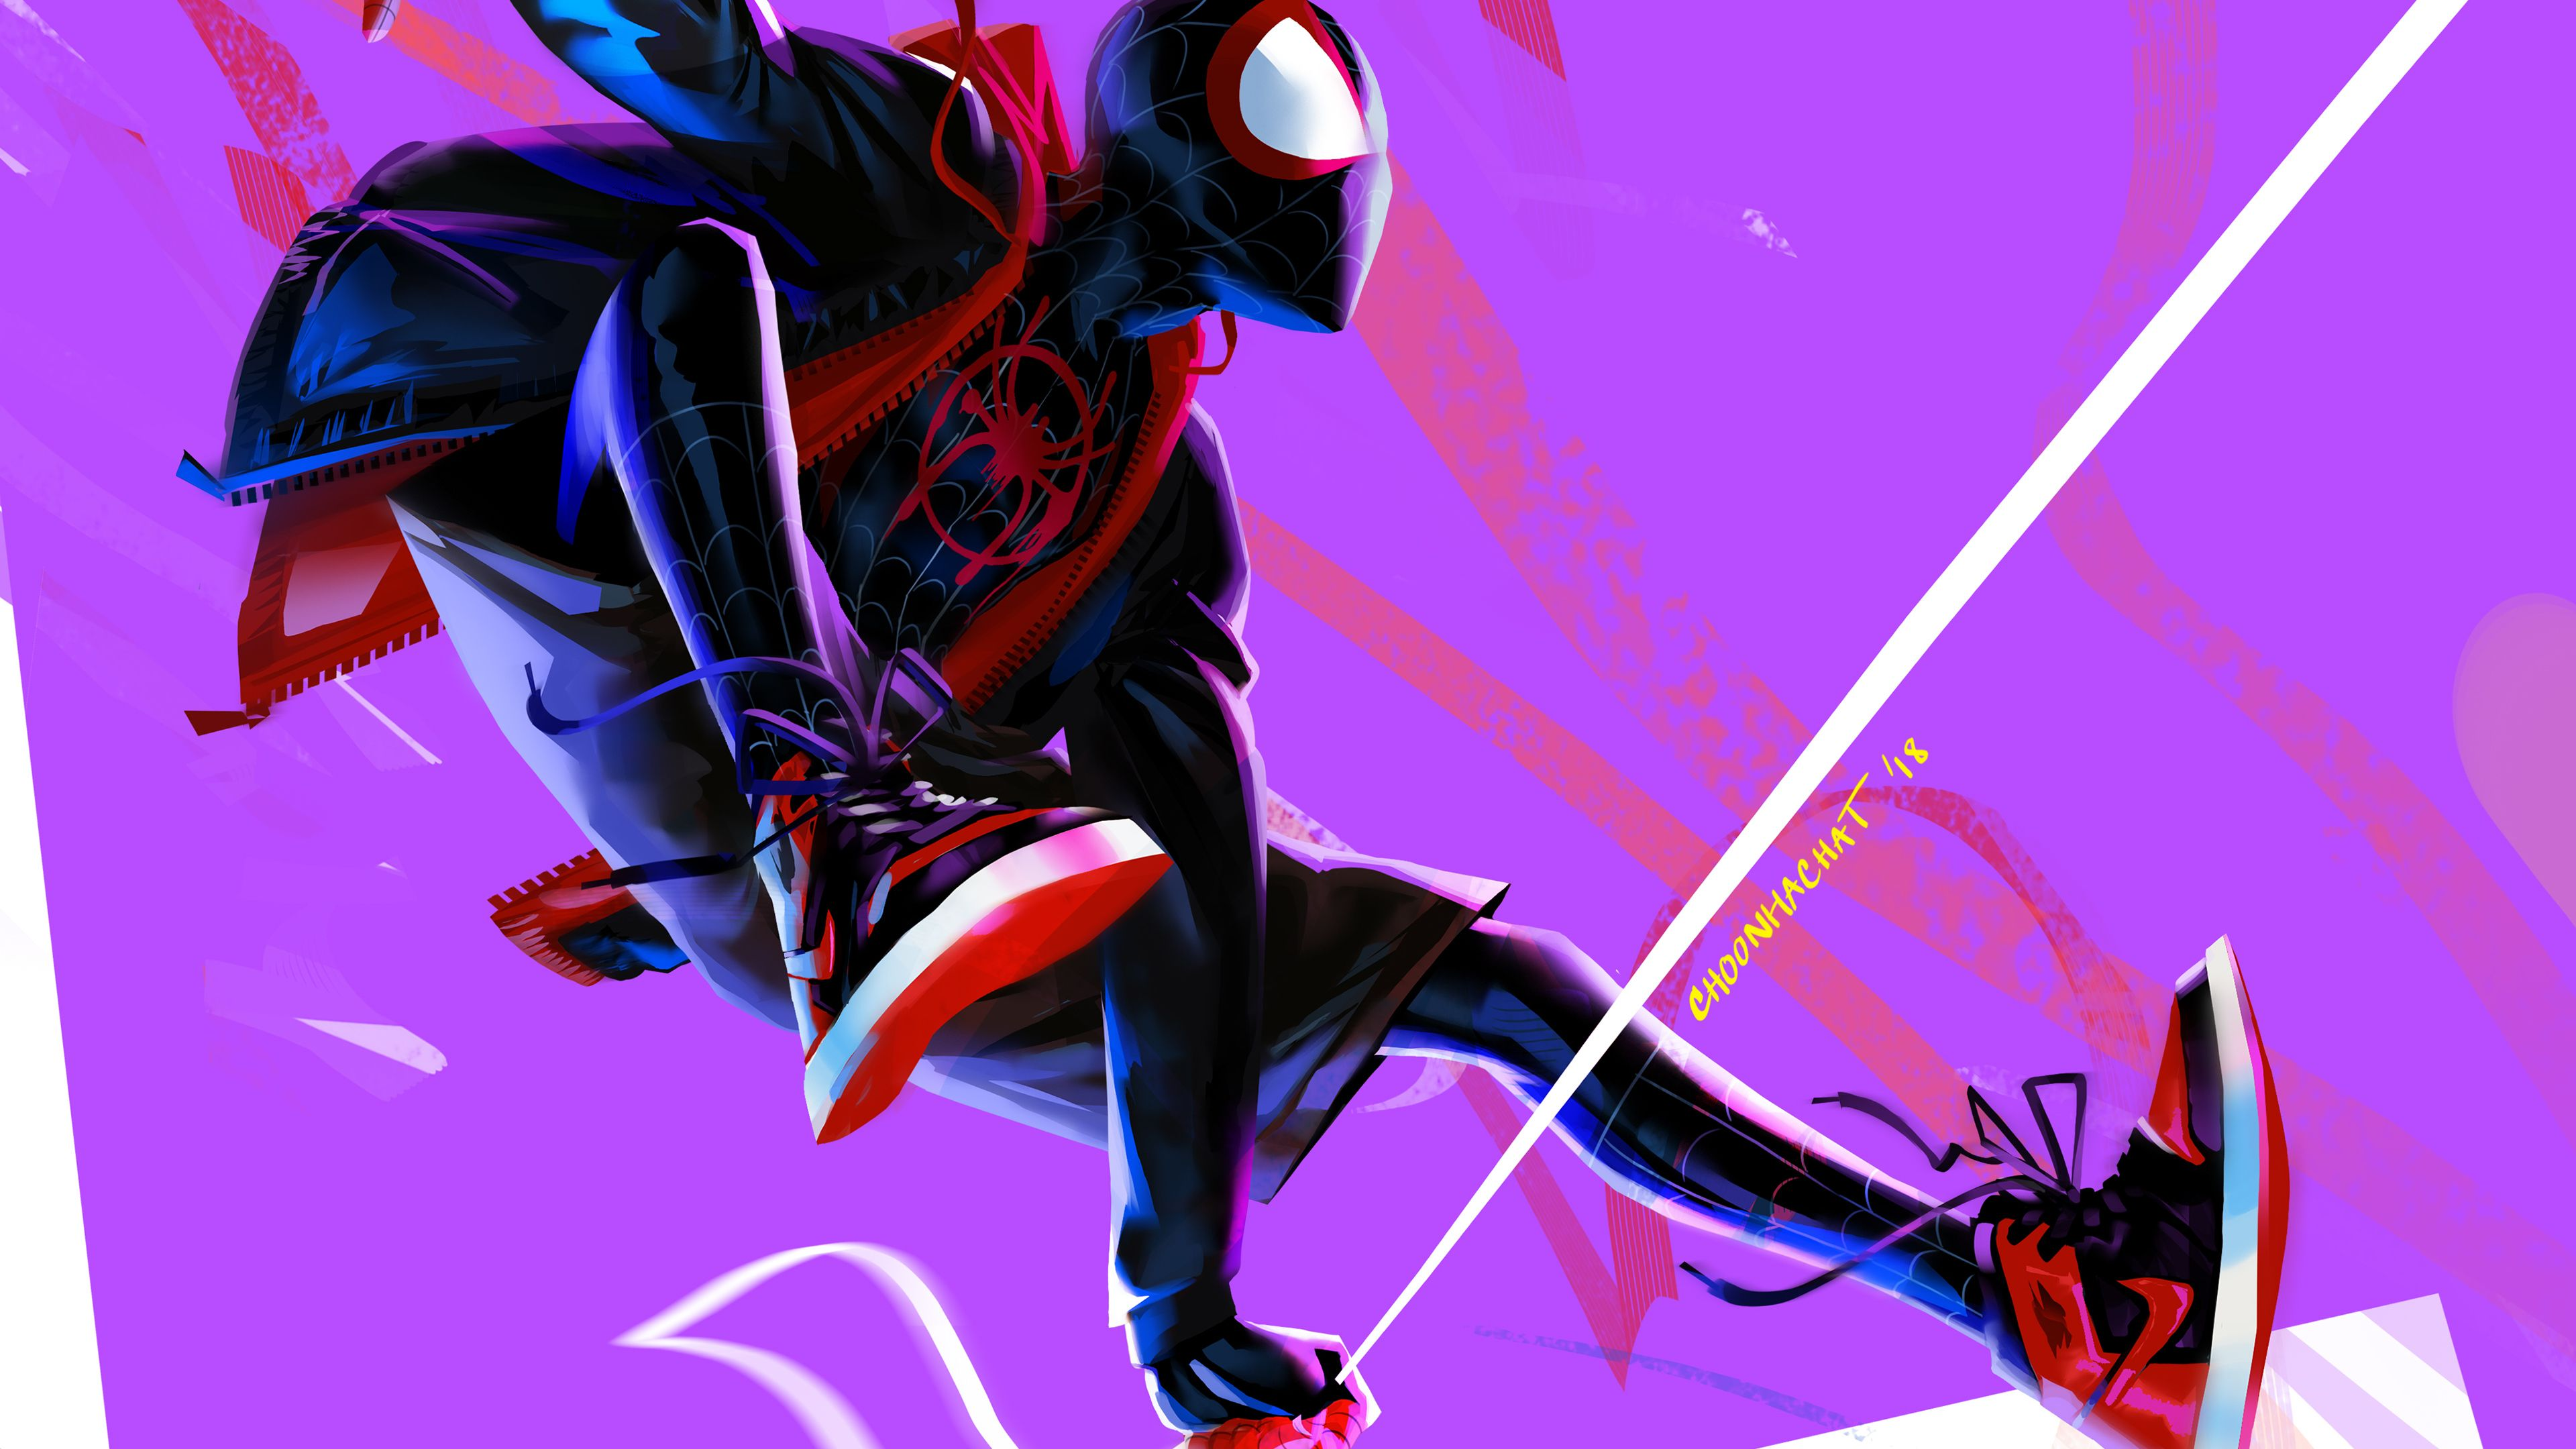 Miles Morales In Spider Man Into The Spider Verse 4k Artwork superheroes wallpapers, spiderman ...